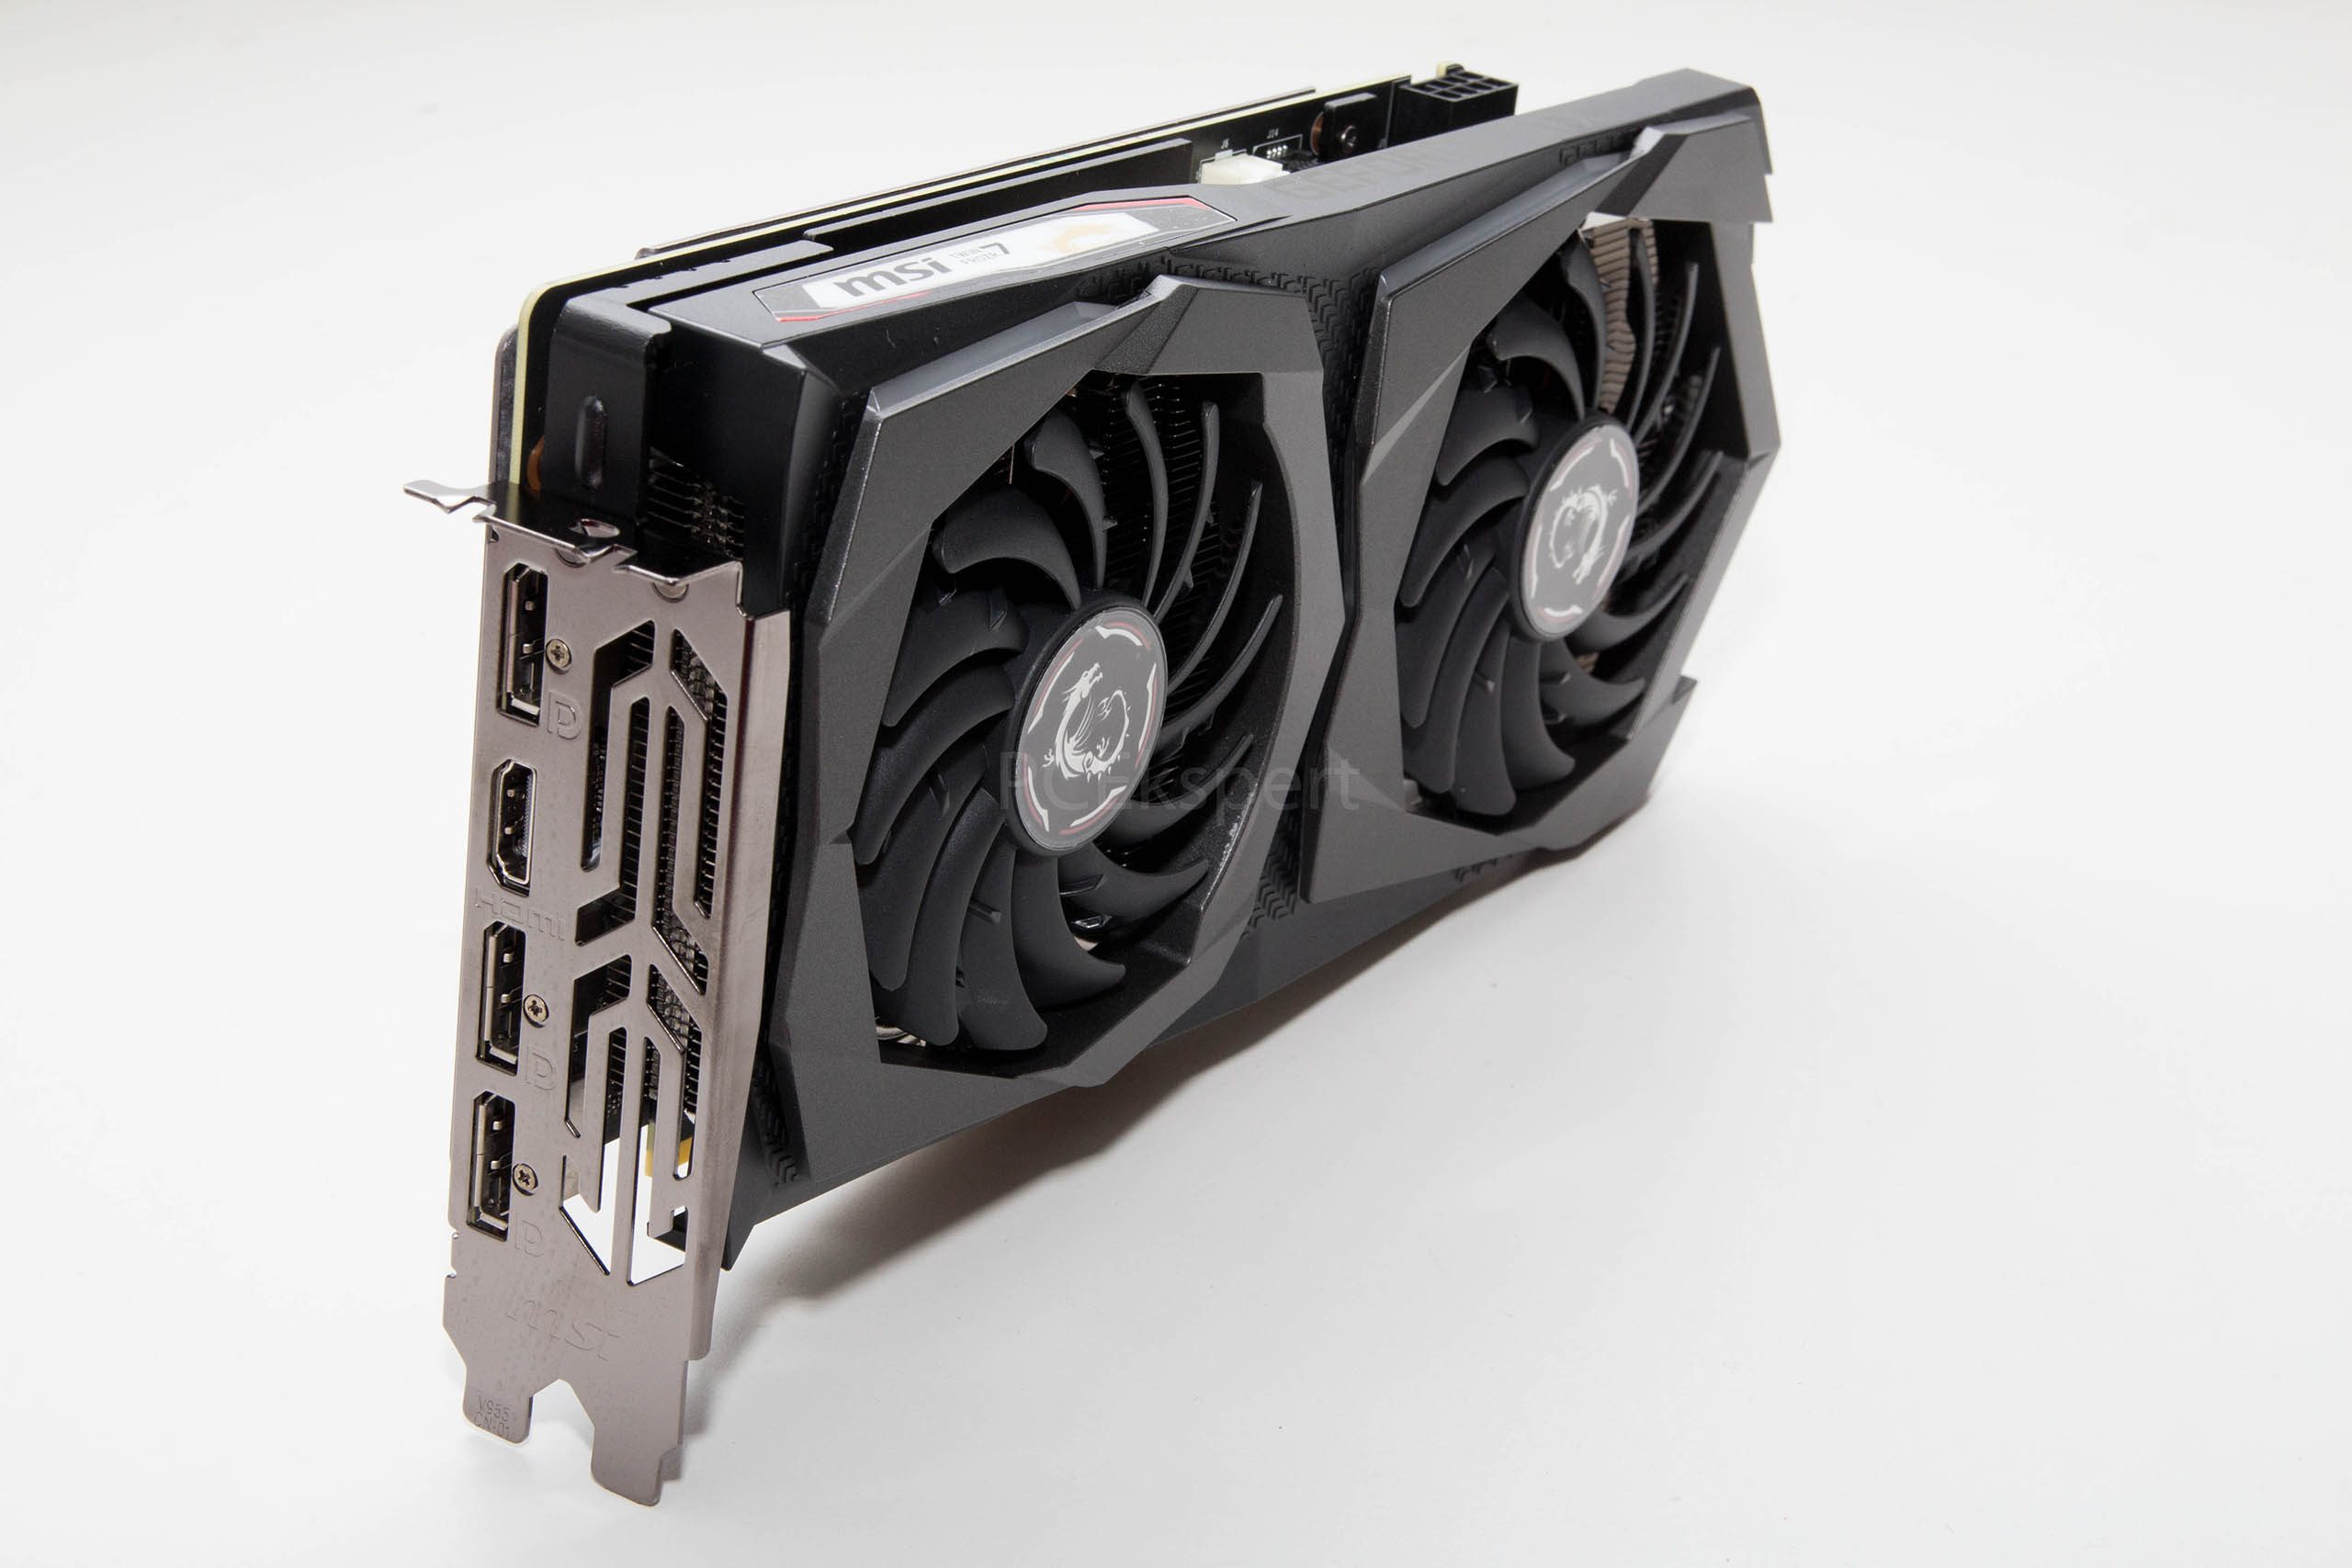 MSI GeForce GTX 1660 Gaming X recenzija